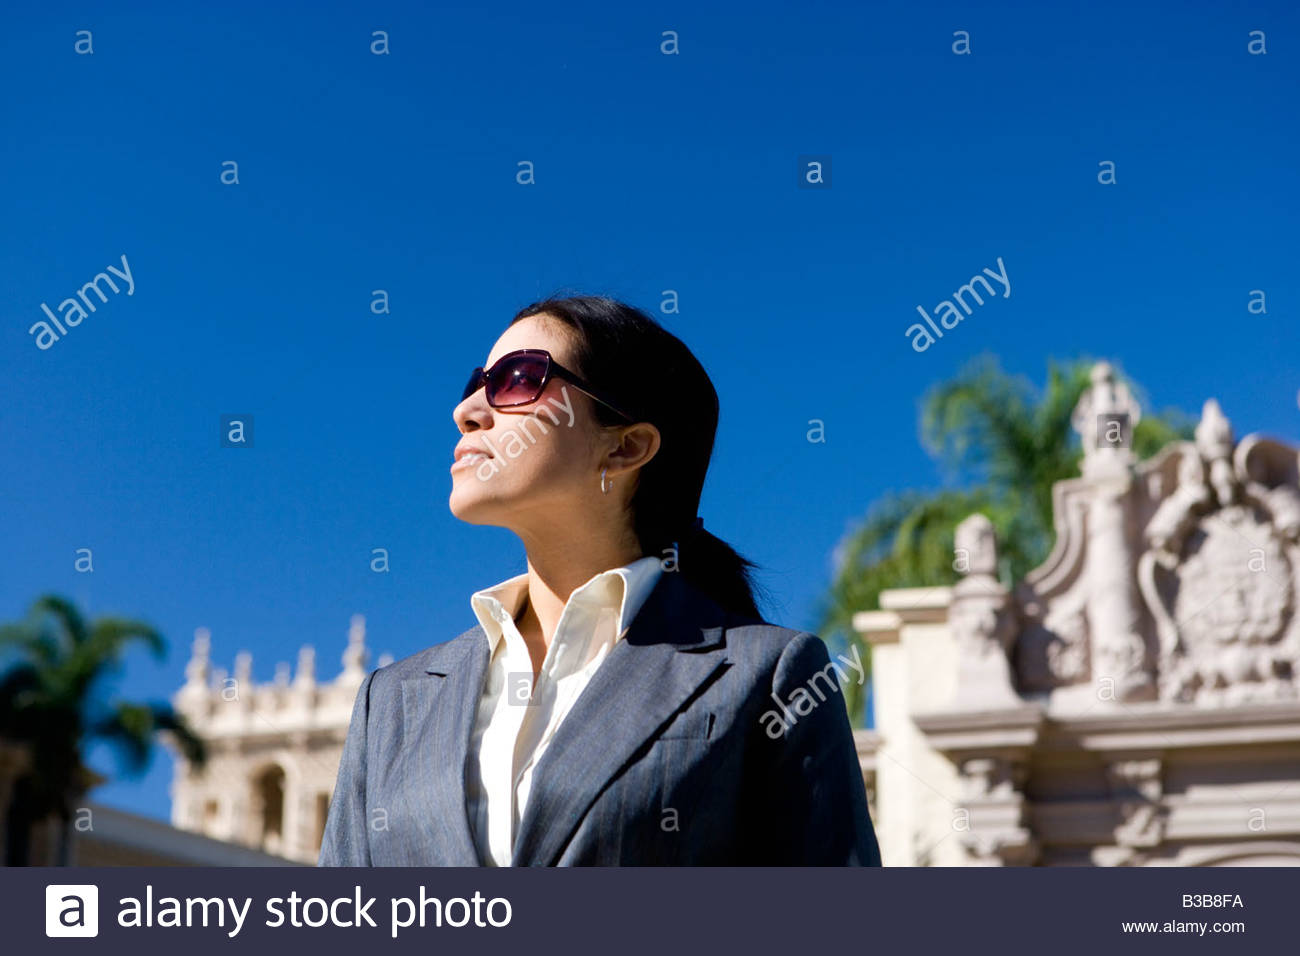 Businesswoman standing near historic building - Stock Image